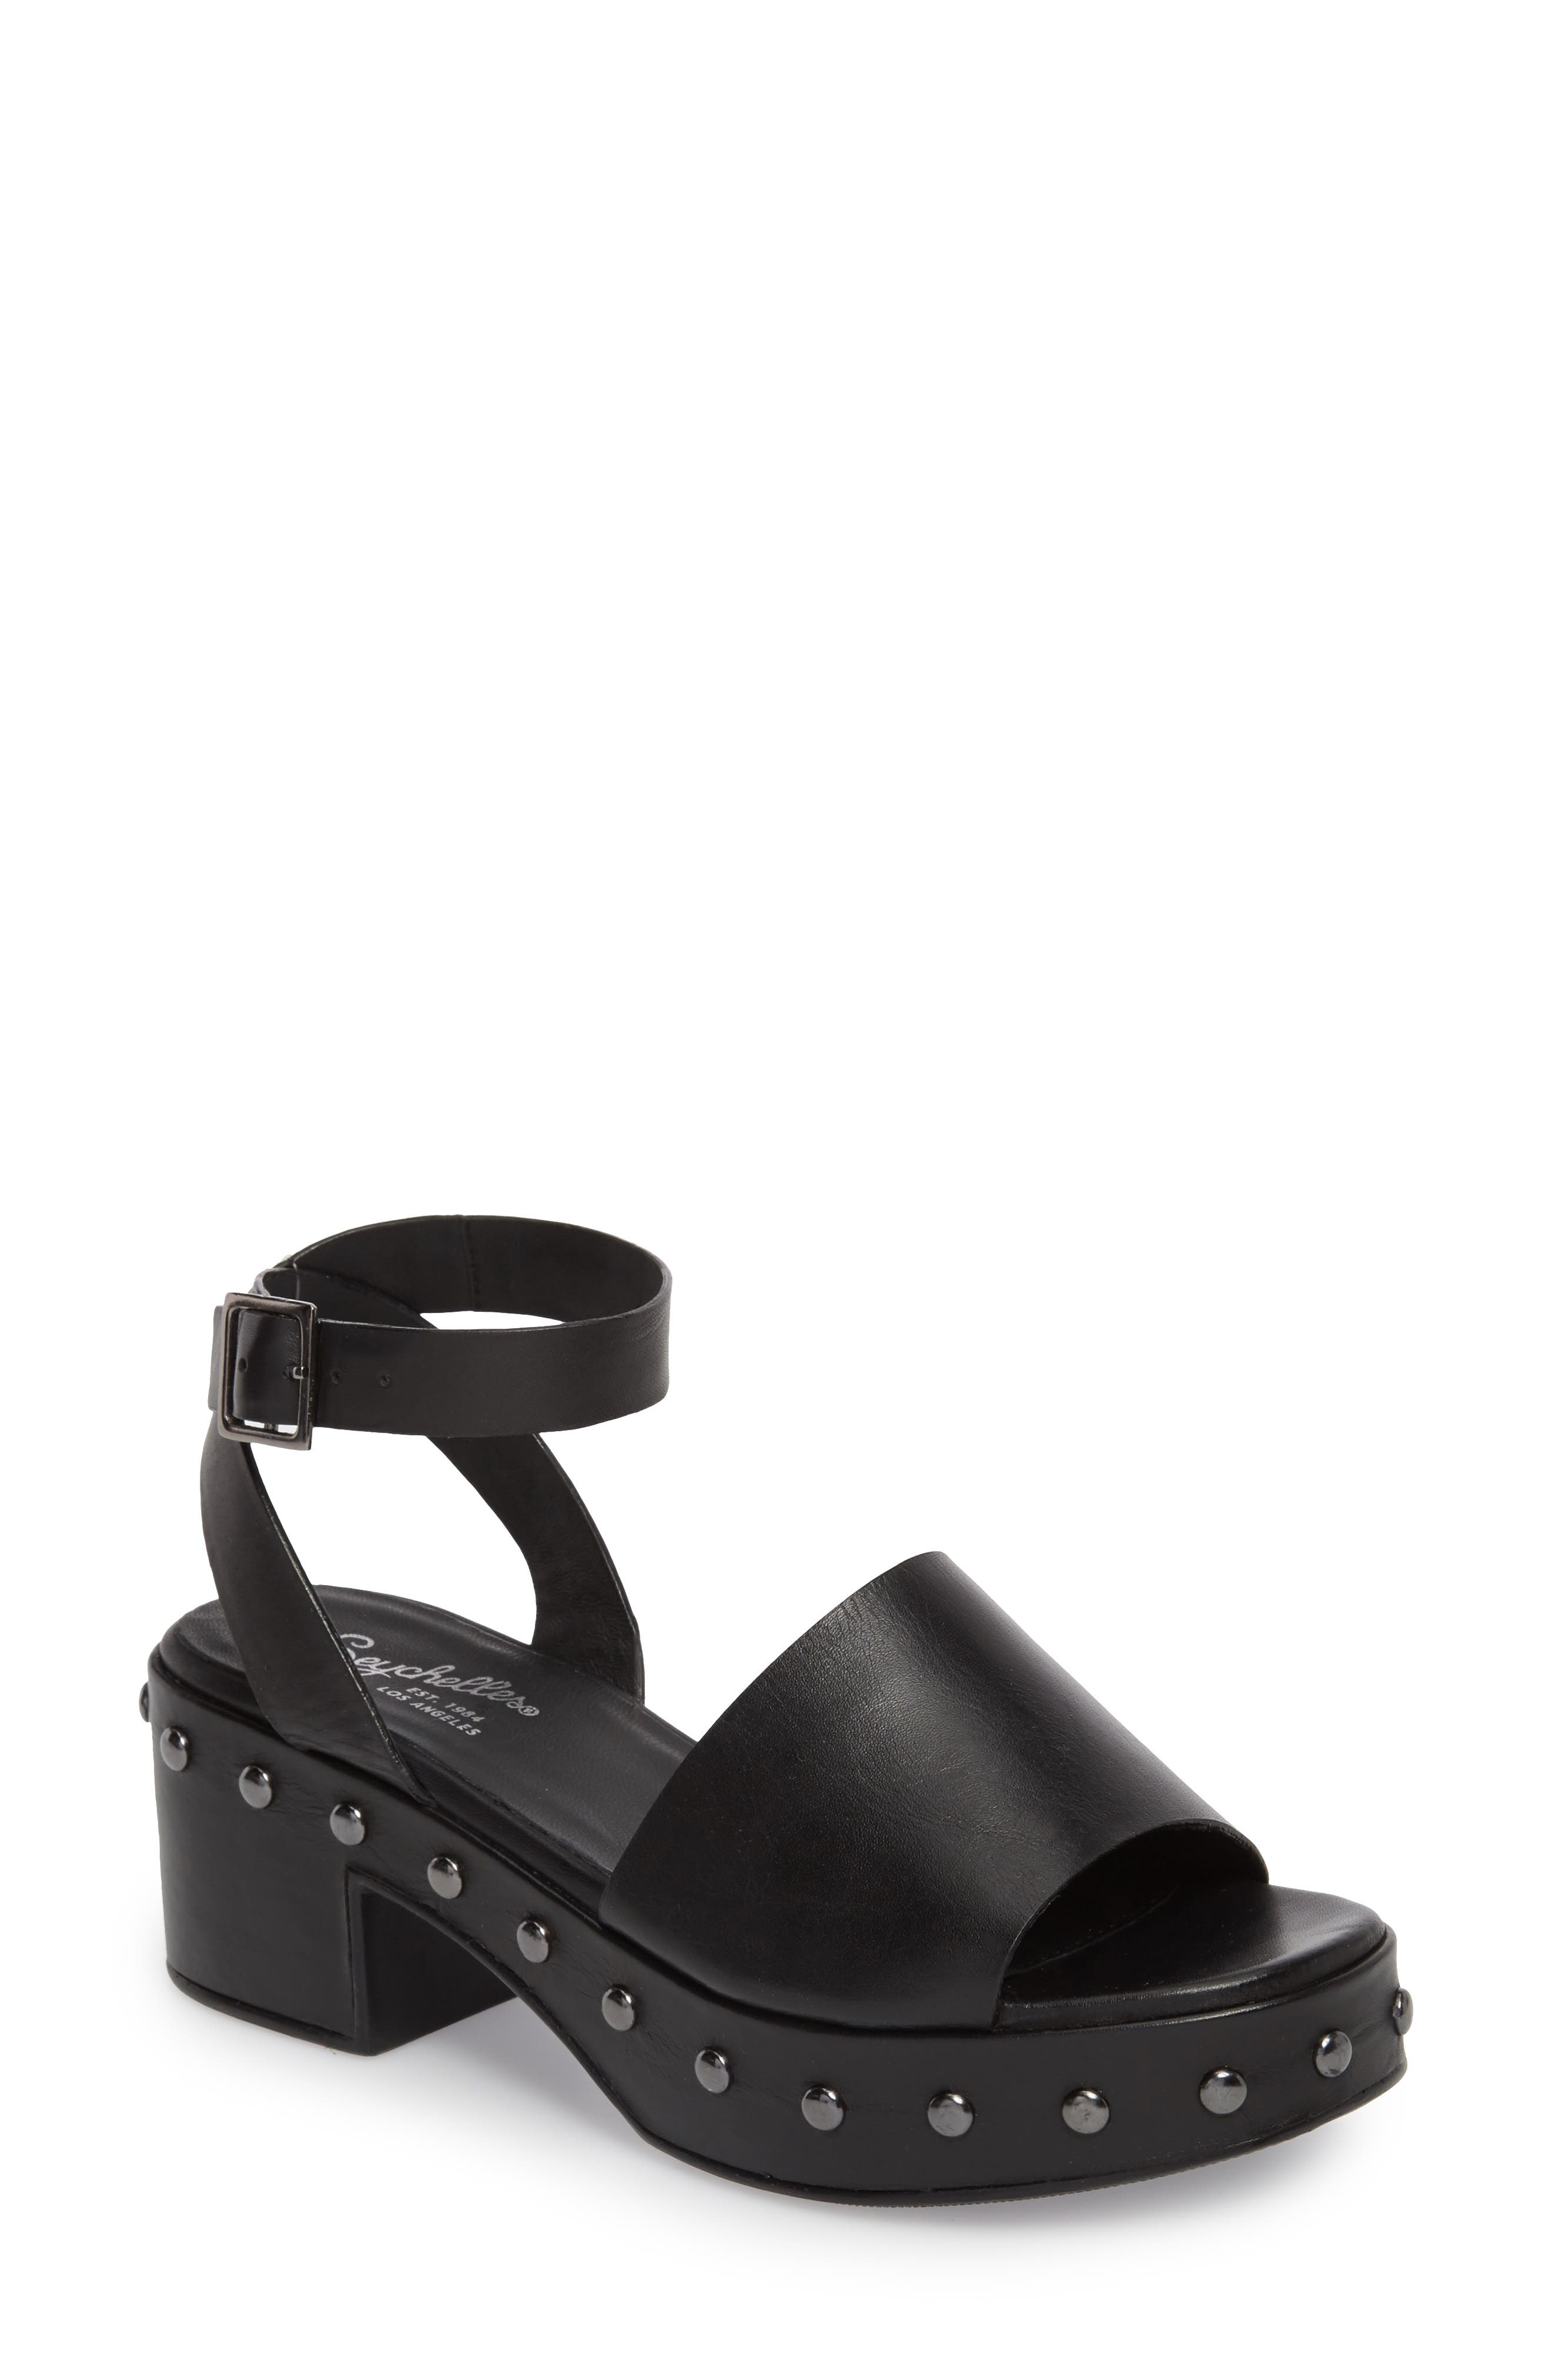 Spare Moments Sandal,                         Main,                         color, BLACK LEATHER